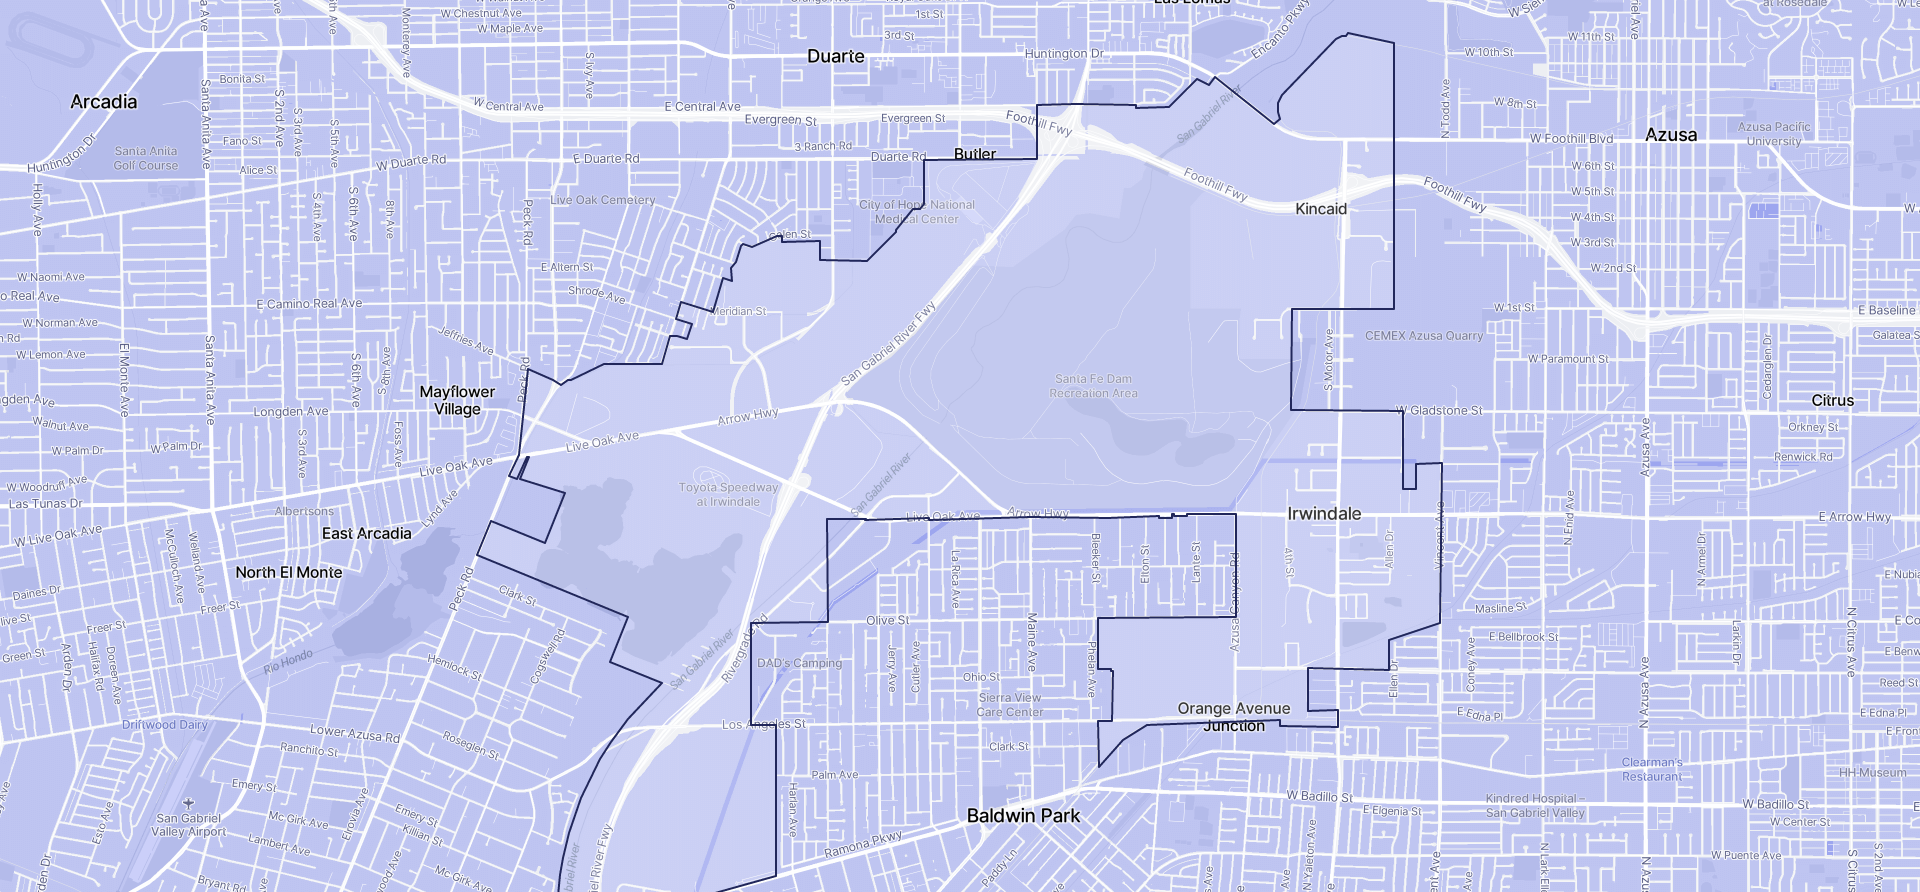 Image of Irwindale boundaries on a map.